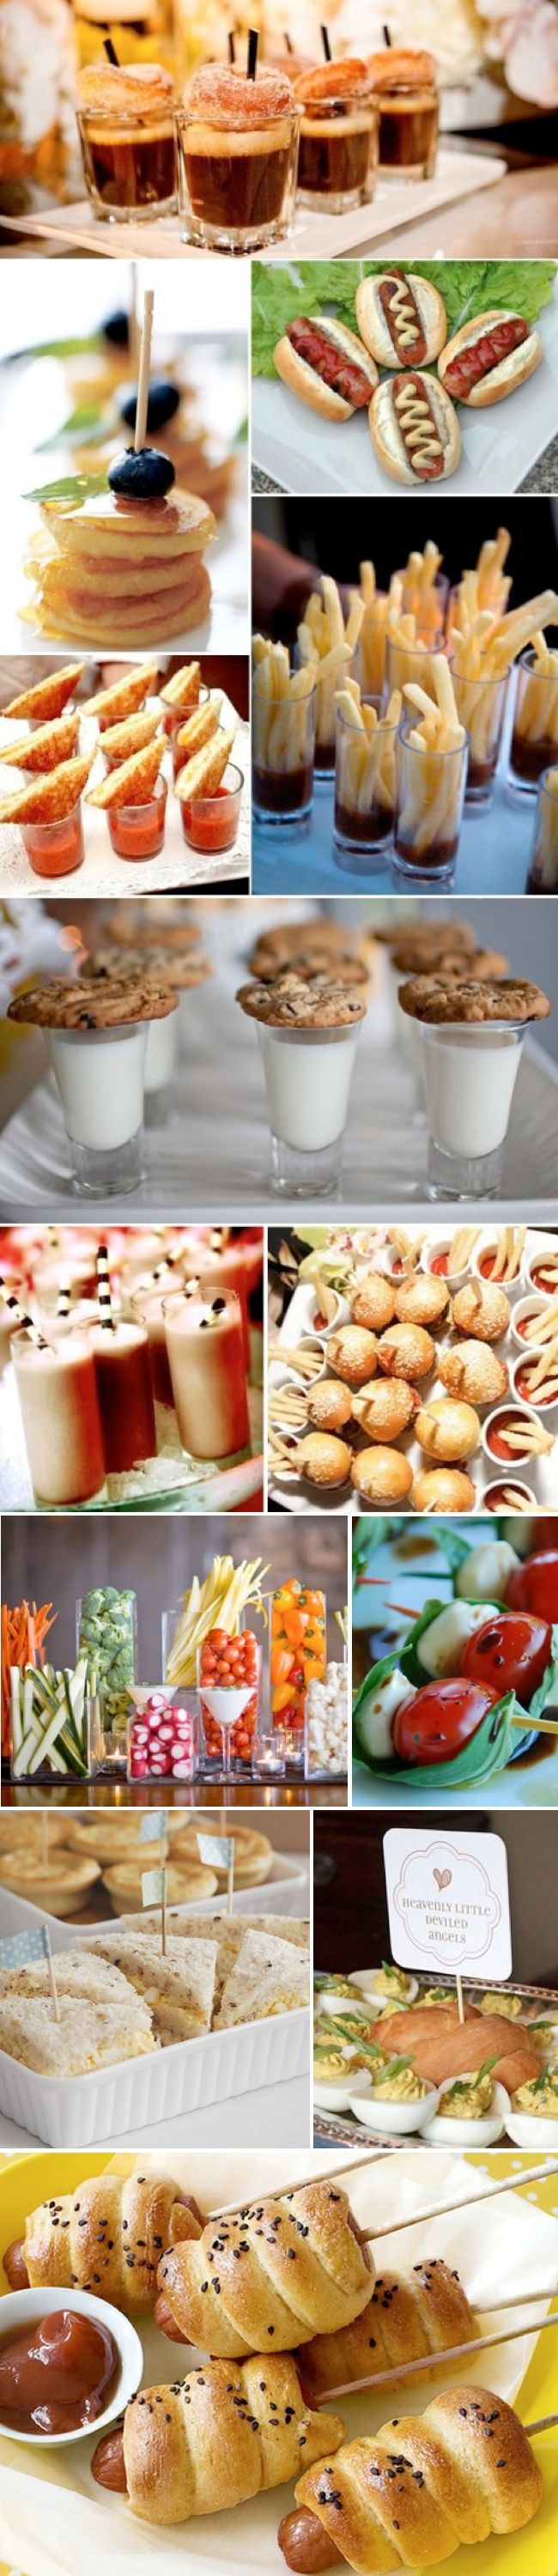 A list of easy, tasty Indian party foods to serve at your next get-together. Break from the usual and serve an array of sumptuous Indian snacks.